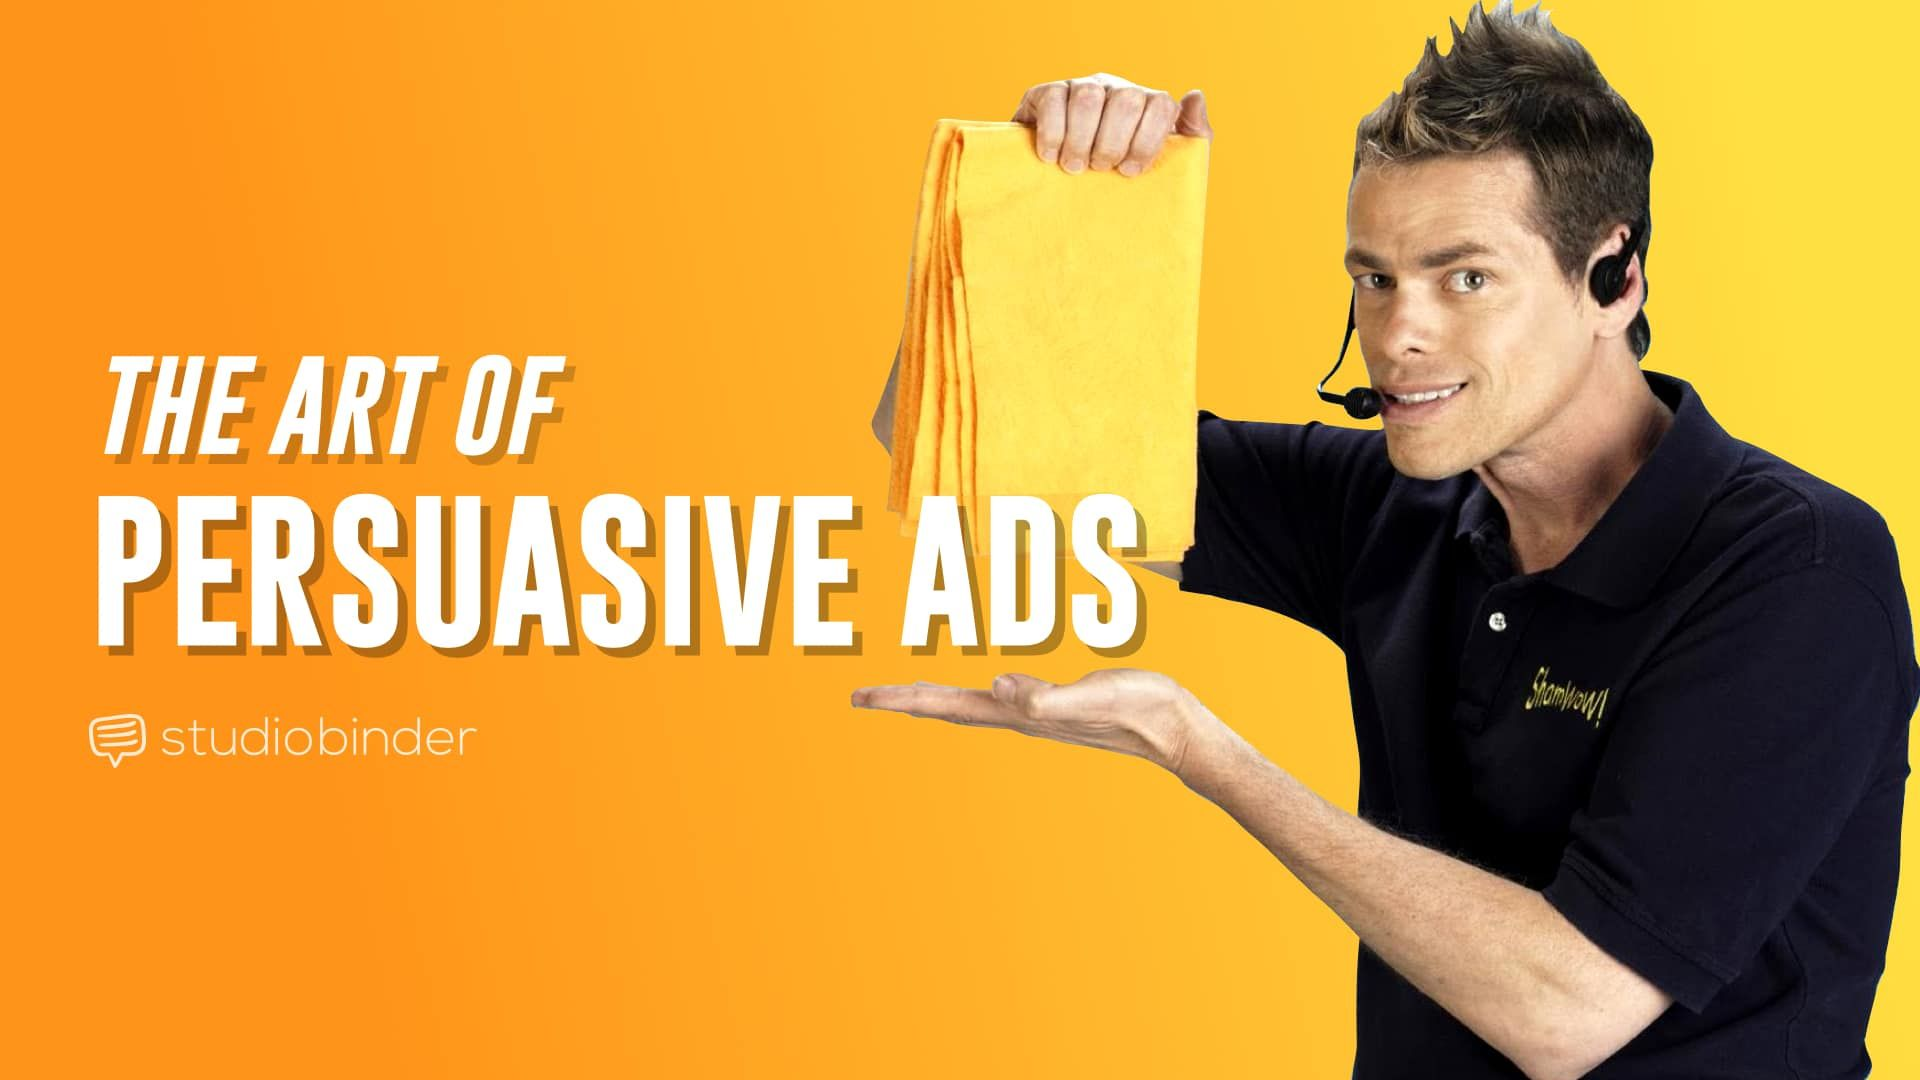 You can wield tremendous power by mastering persuasive